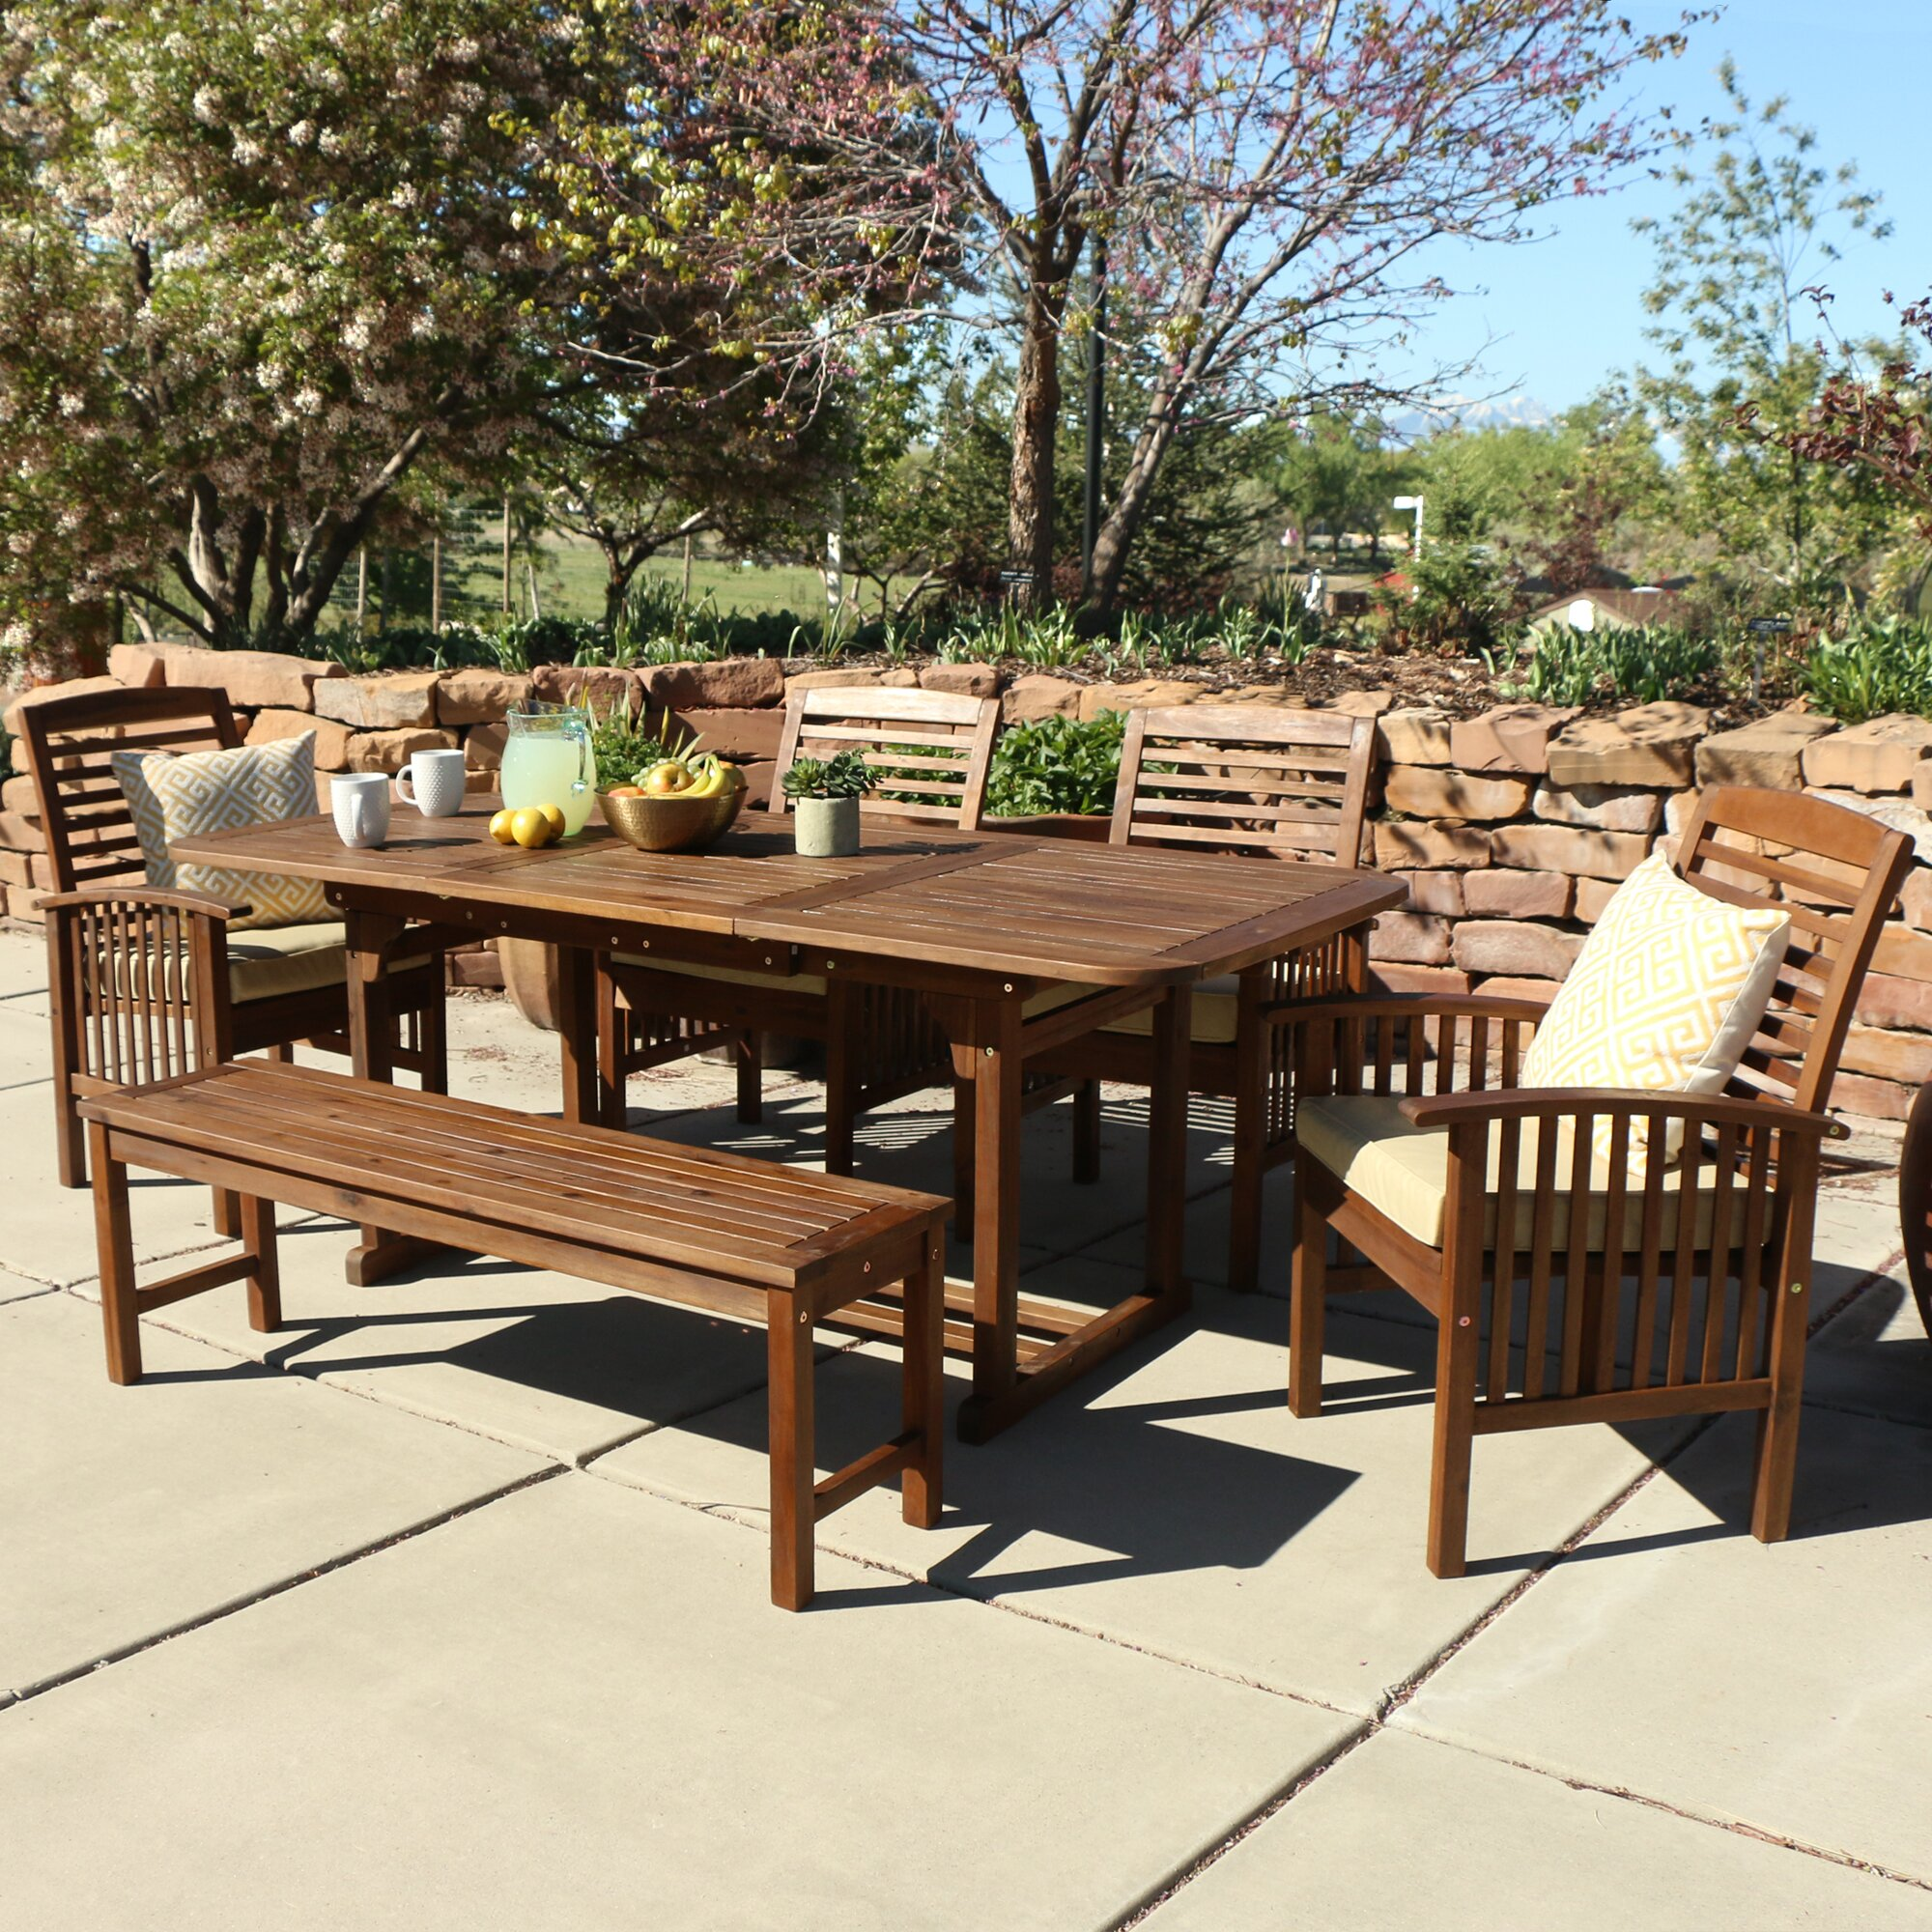 Outdoor Dining Sets For 6